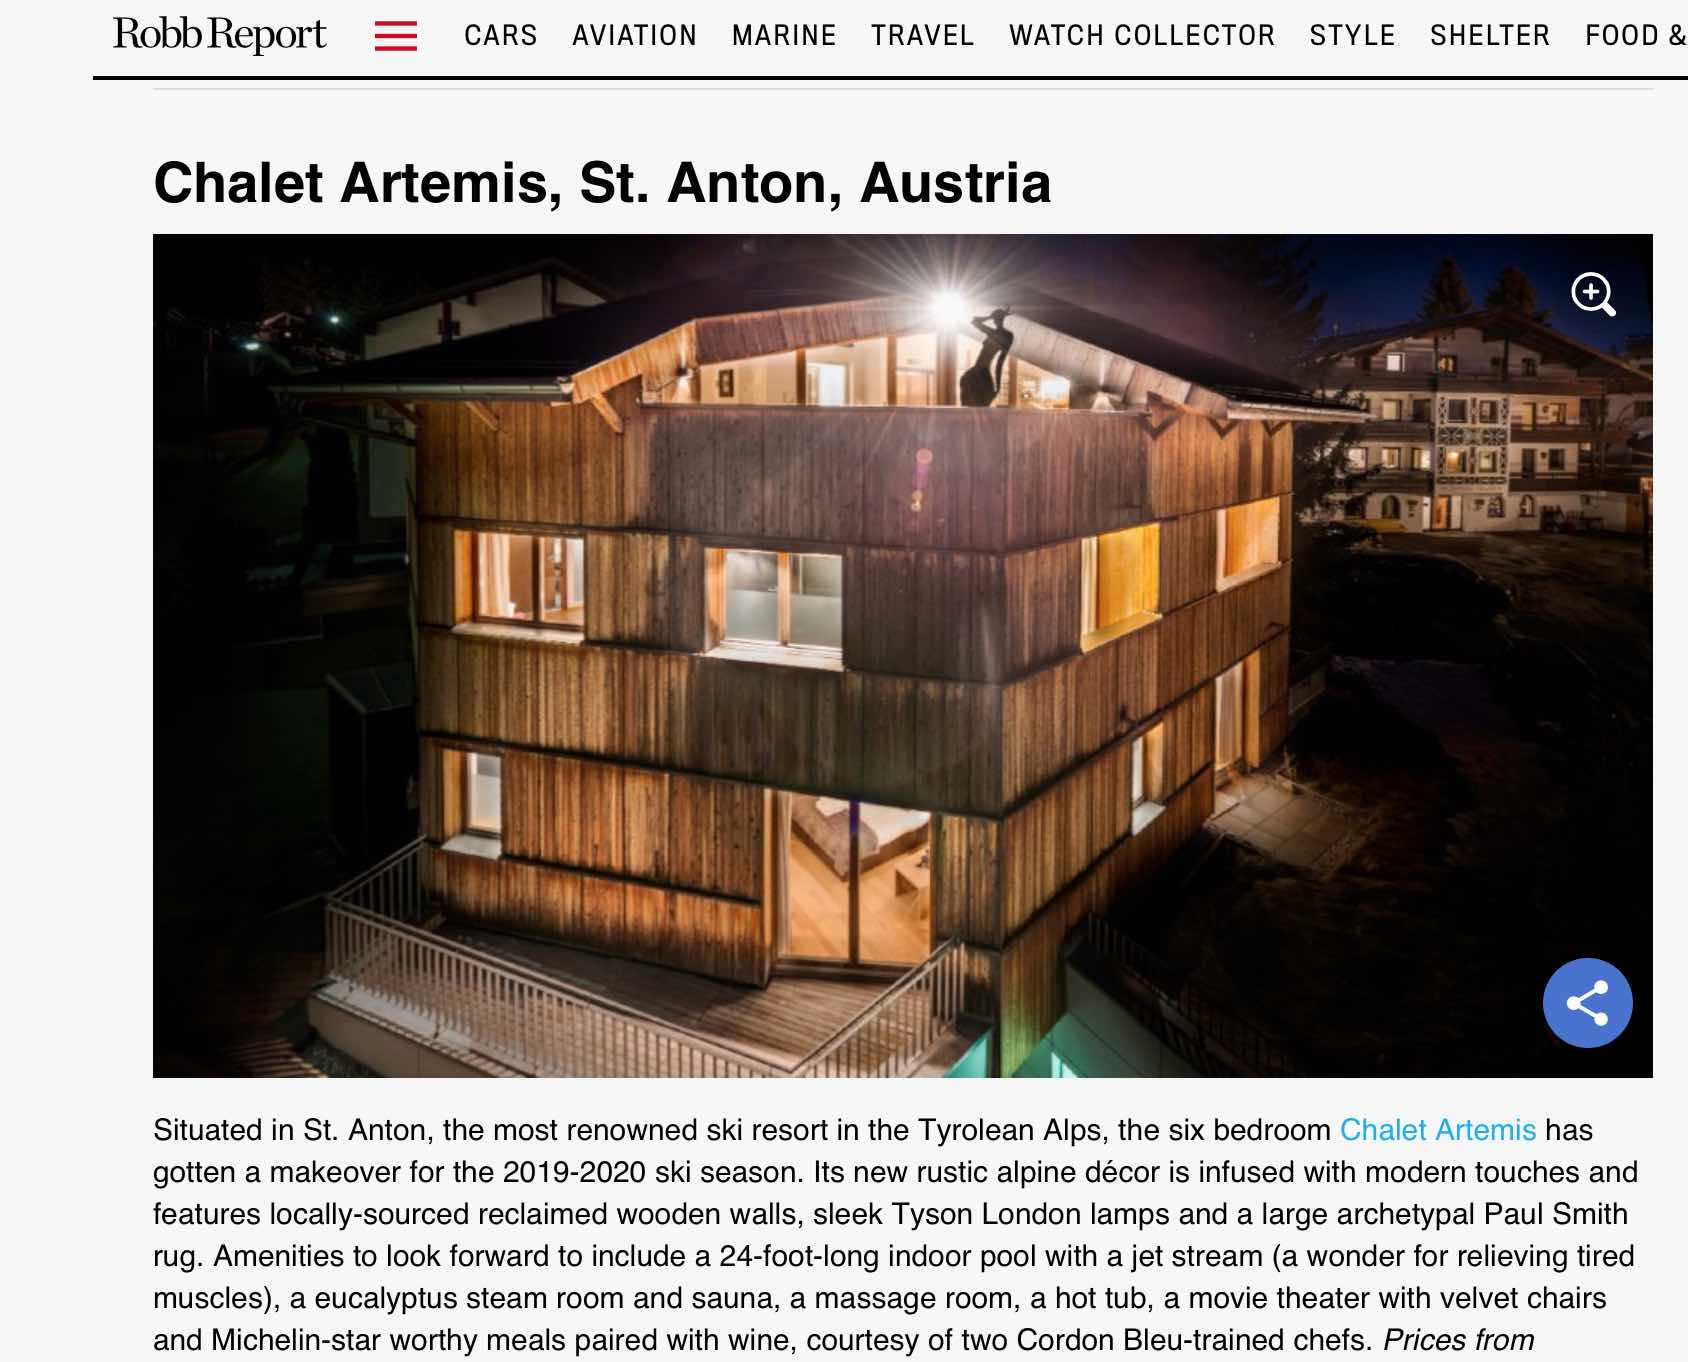 Robb Report article Chalet Artemis image